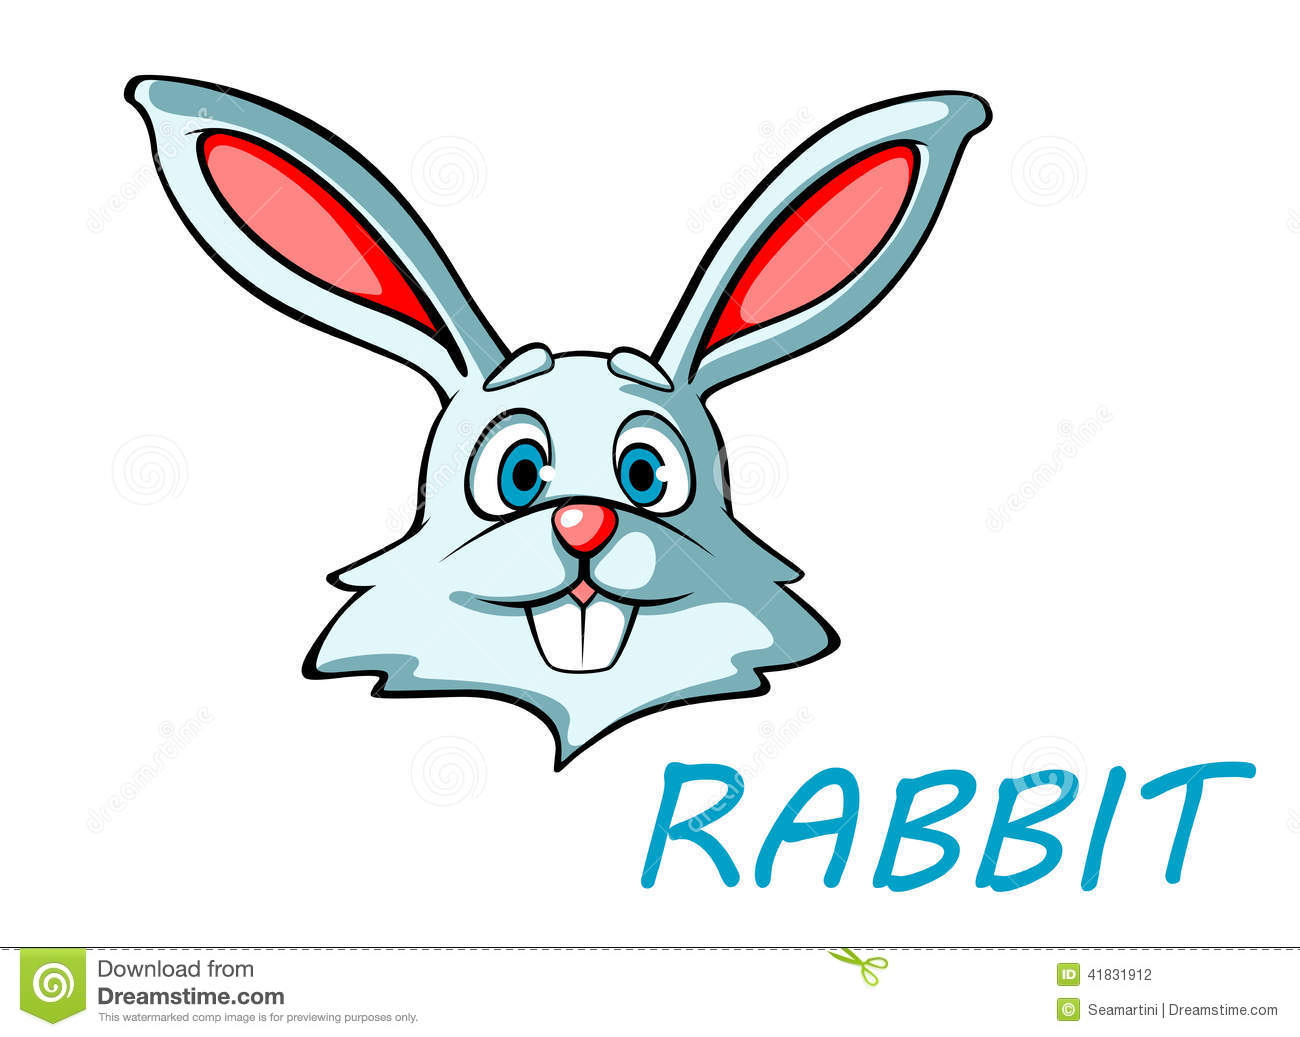 Funny Cartoon Rabbit Or Hare Stock Vector - Image: 41831912